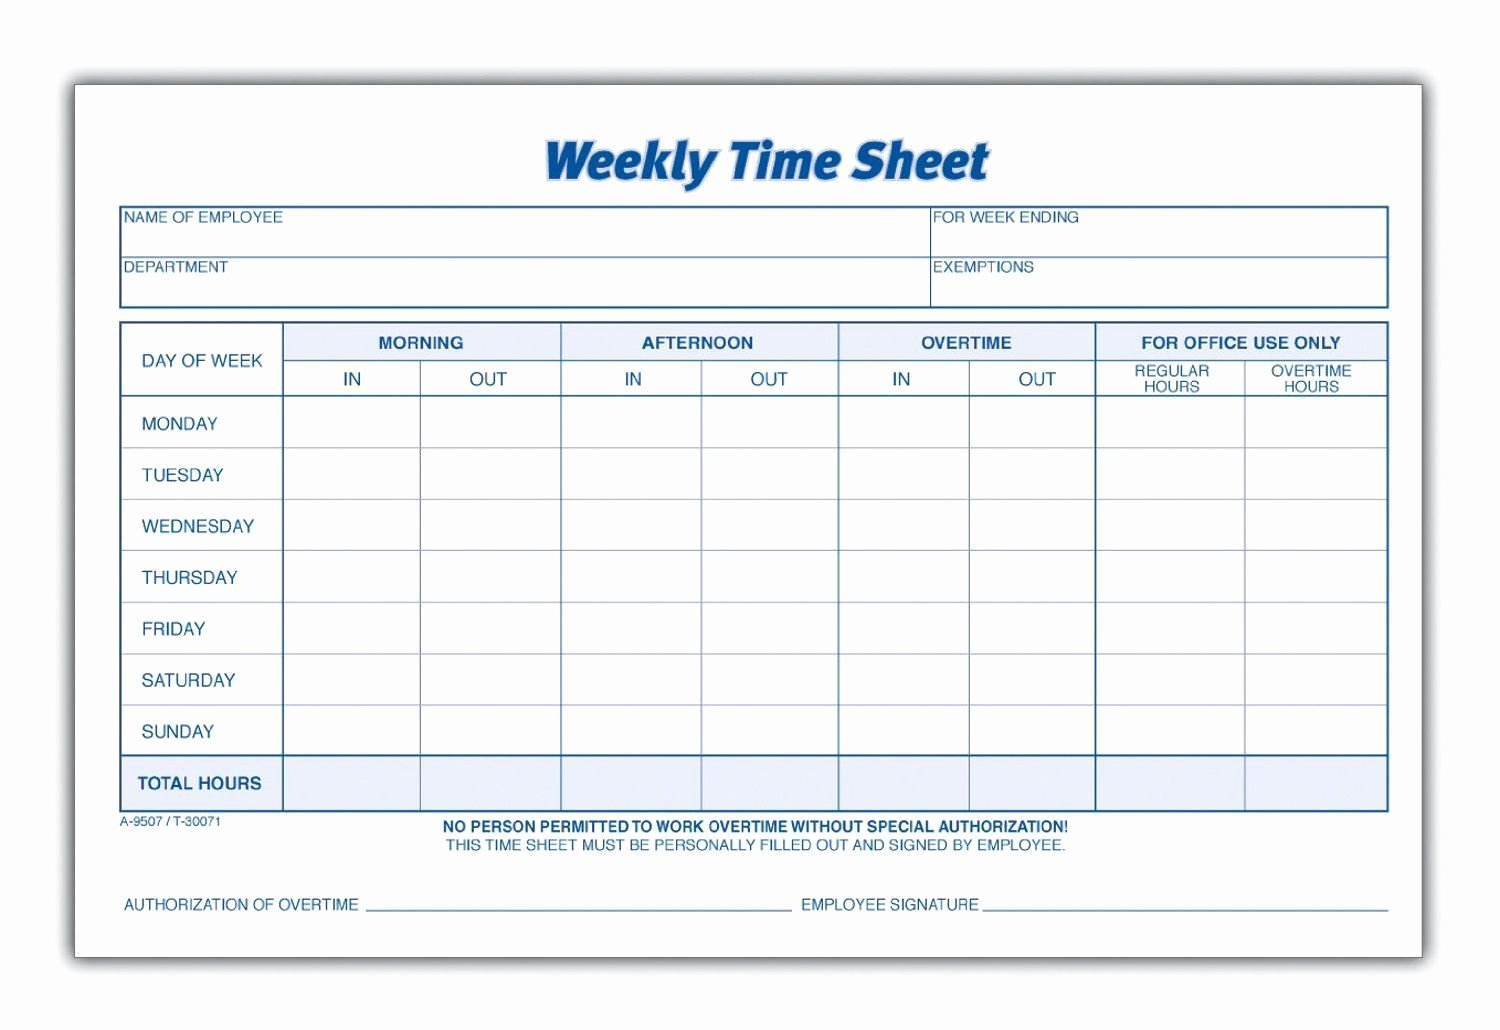 Free Time Sheet Template Fresh Weekly Employee Time Sheet Projects to Try